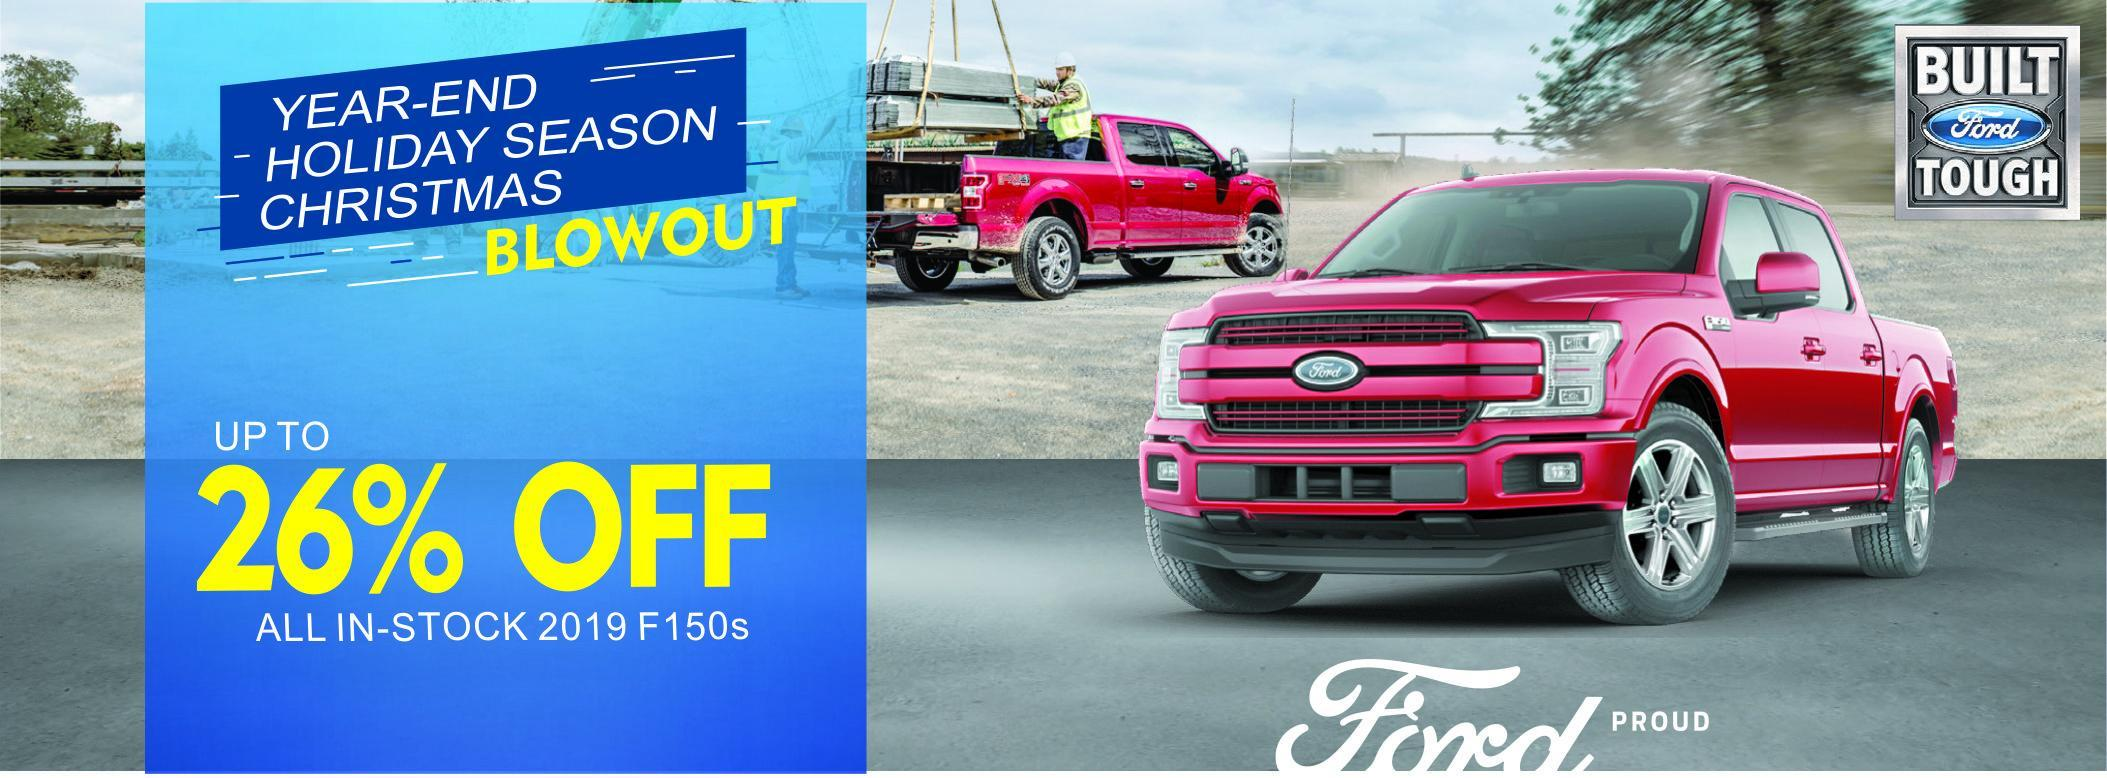 new 2019 ford f150s on sale at lacombe ford